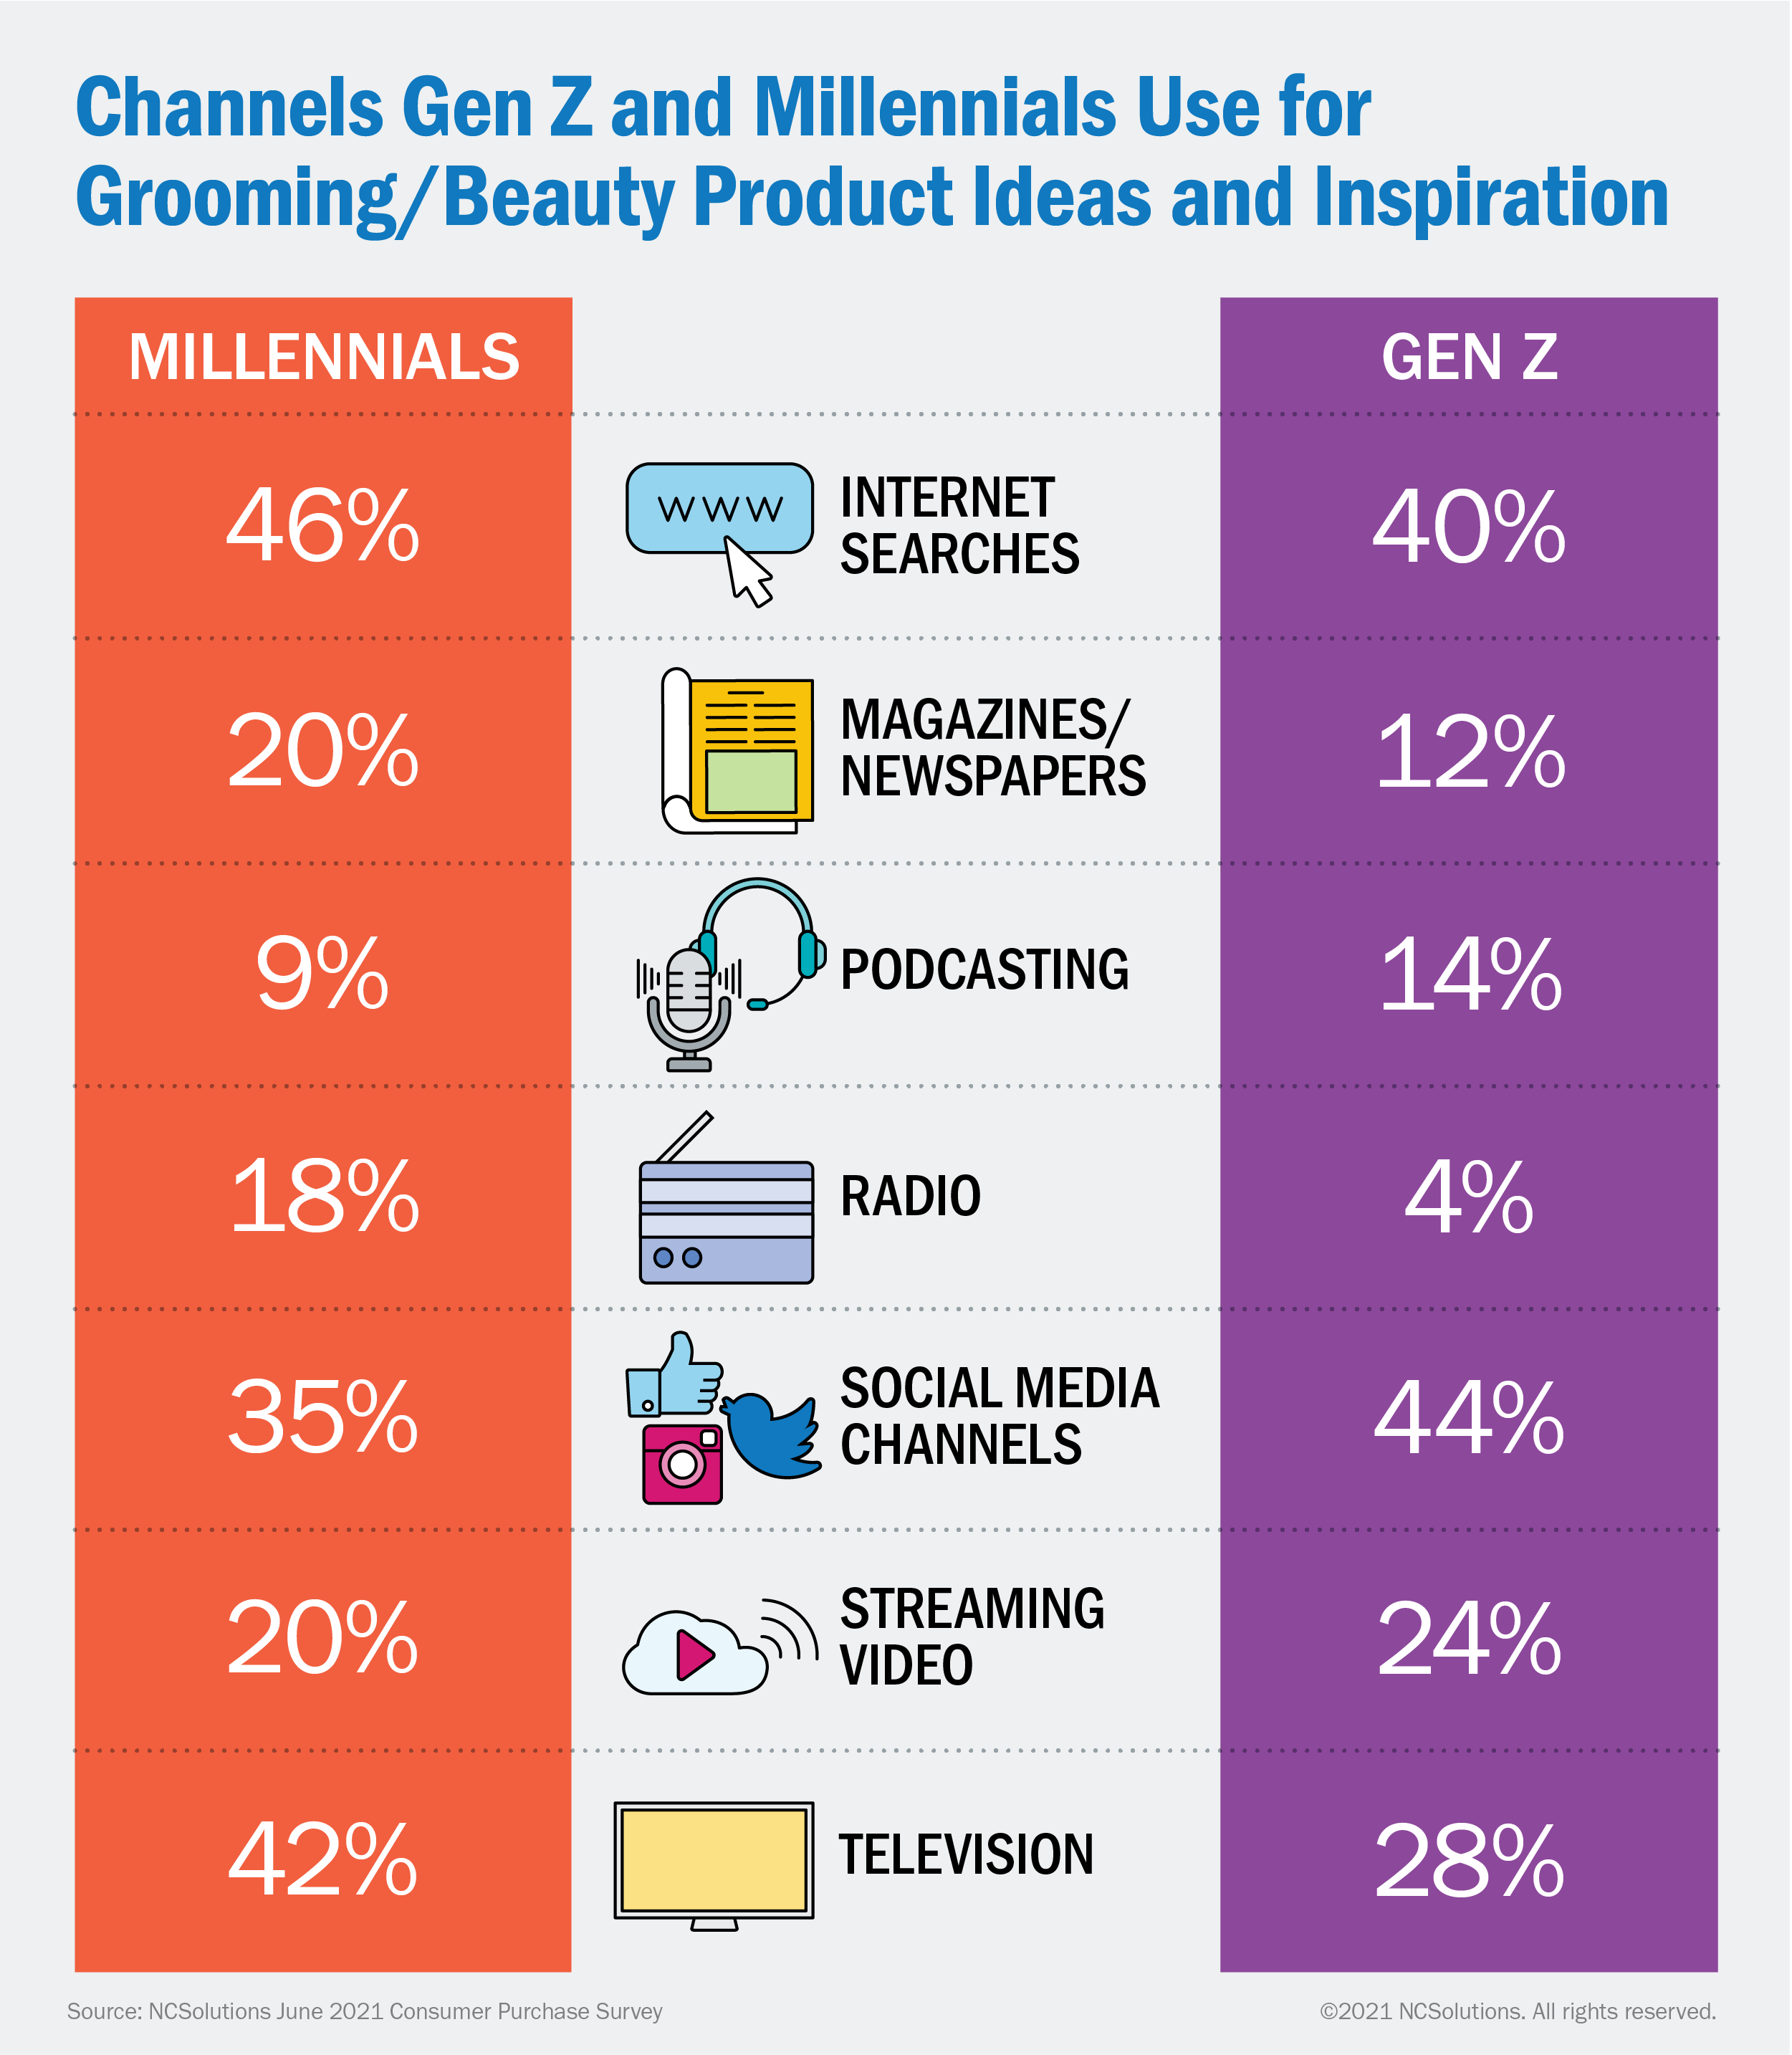 NCS Channels Gen Z and Millennials Use for Grooming/Beauty Product Ideas and Inspiration